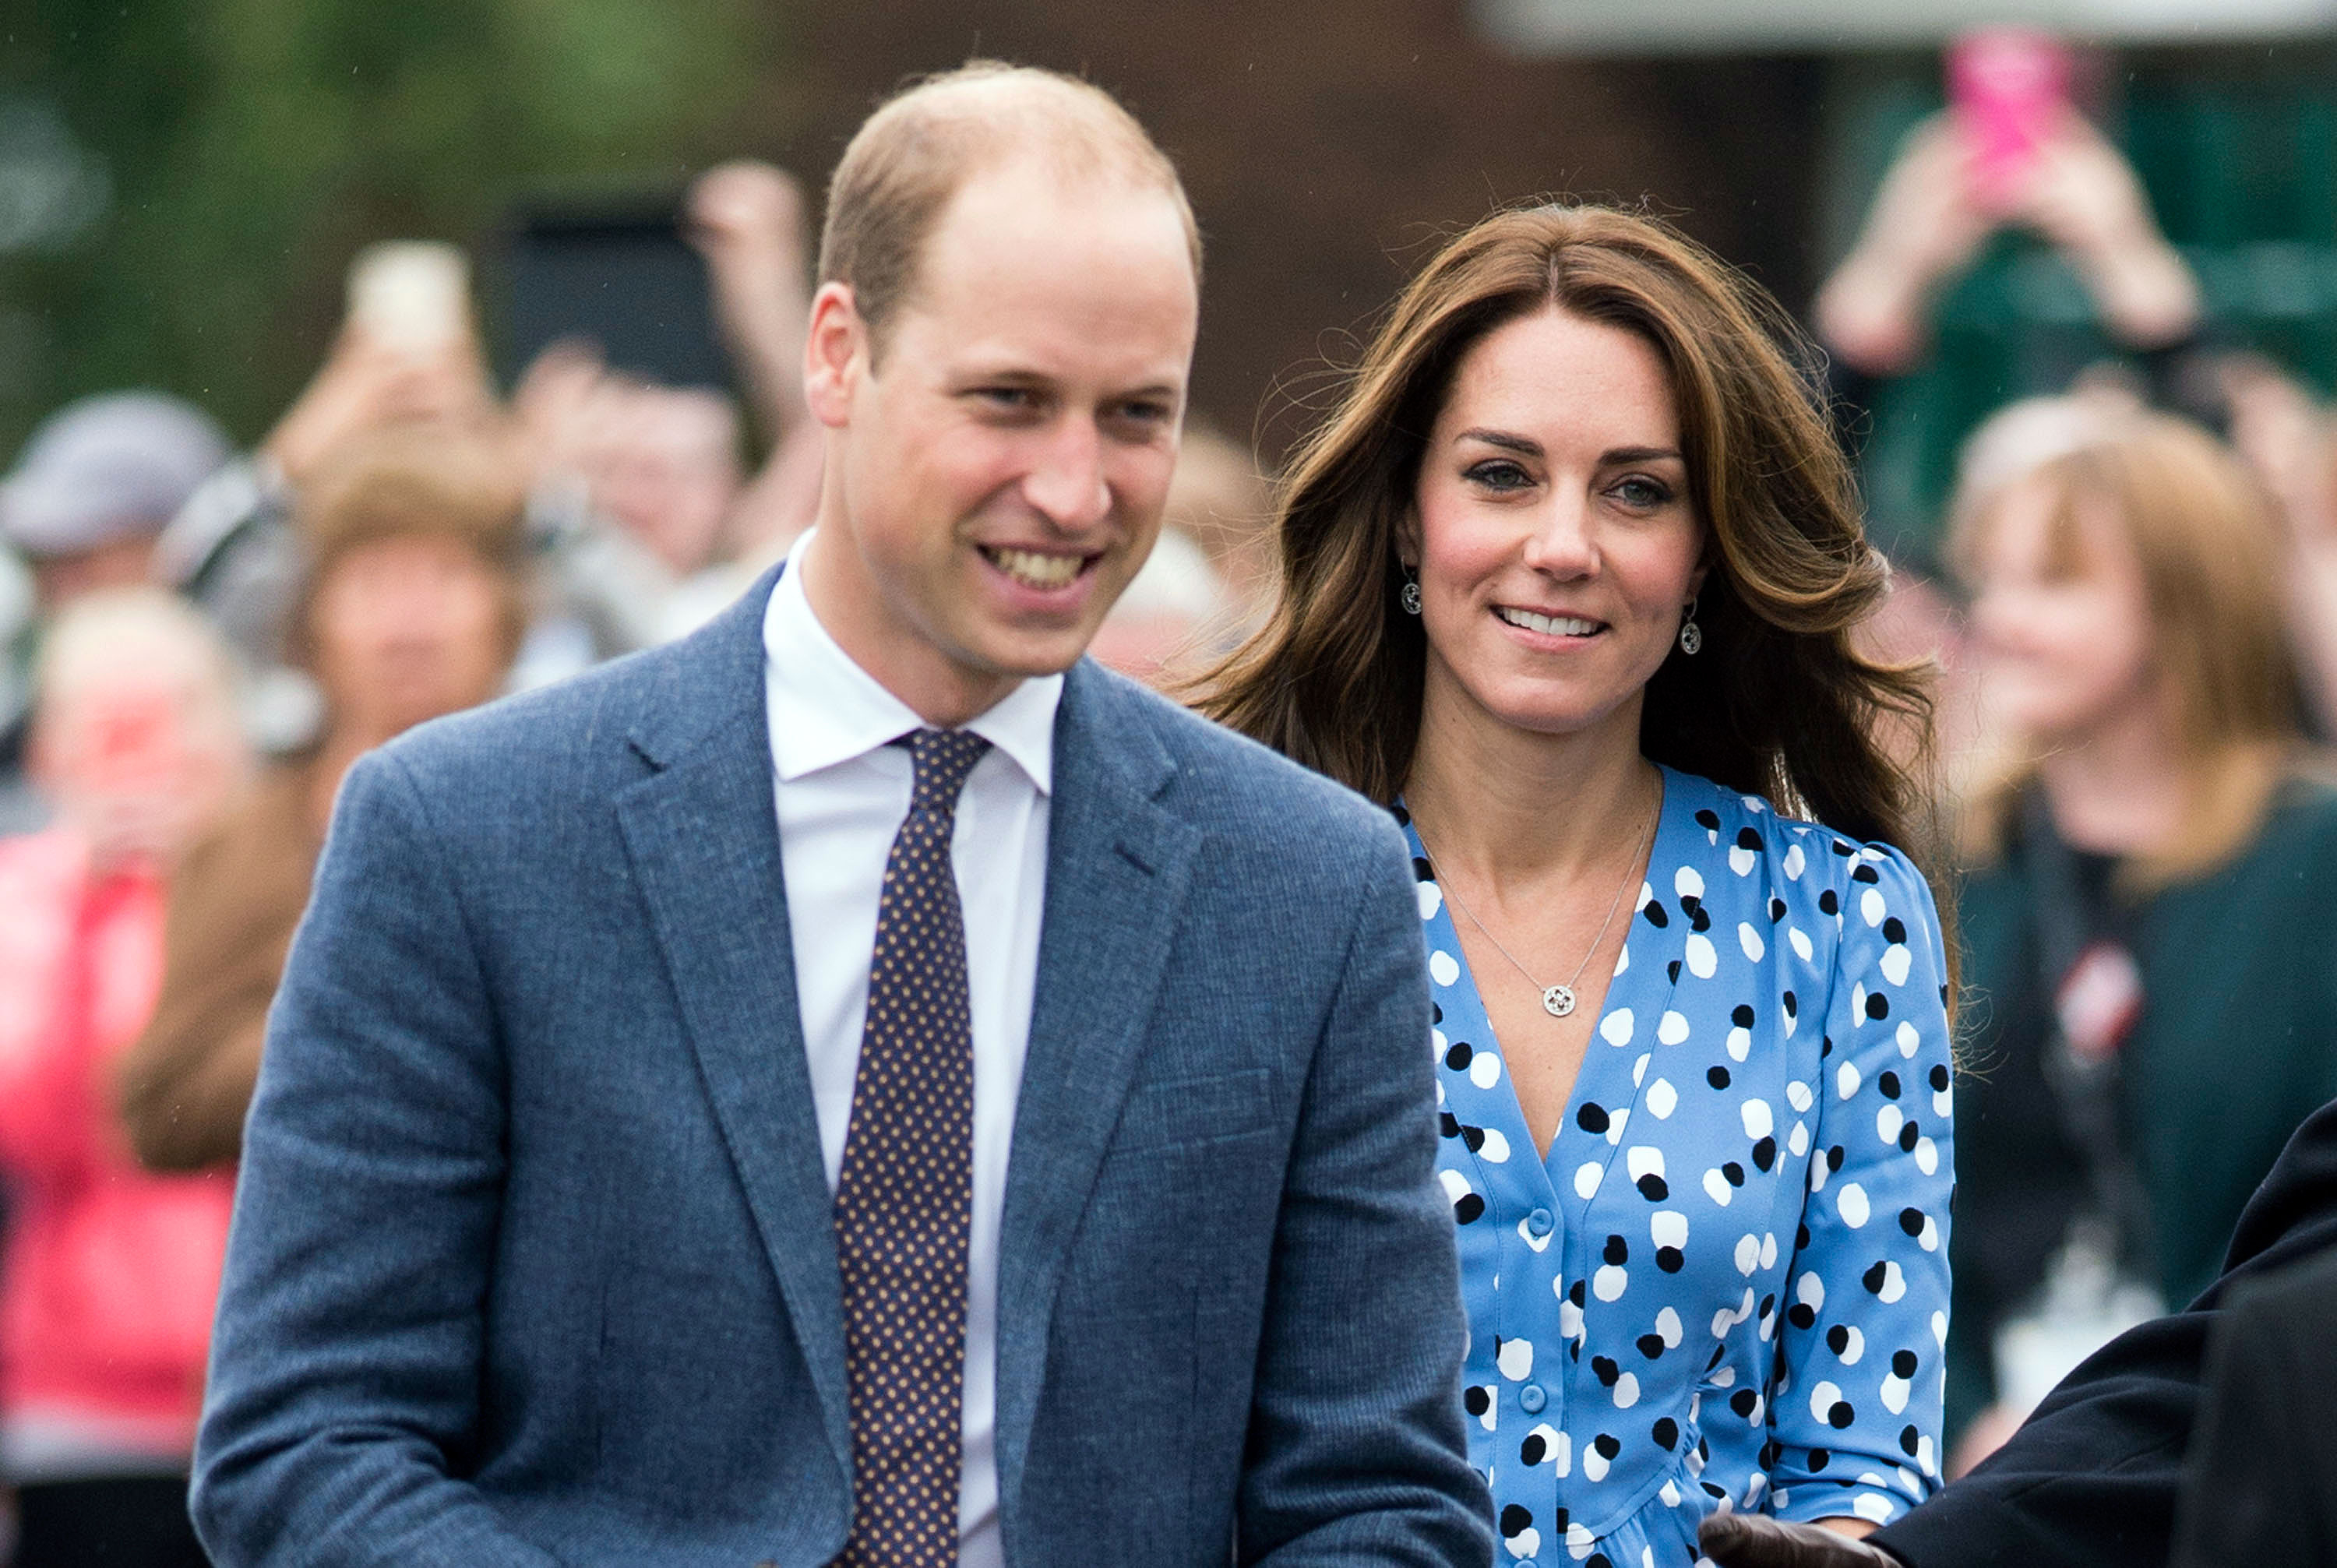 Kate Middleton Flashes Legs in Blue Printed Slit Dress